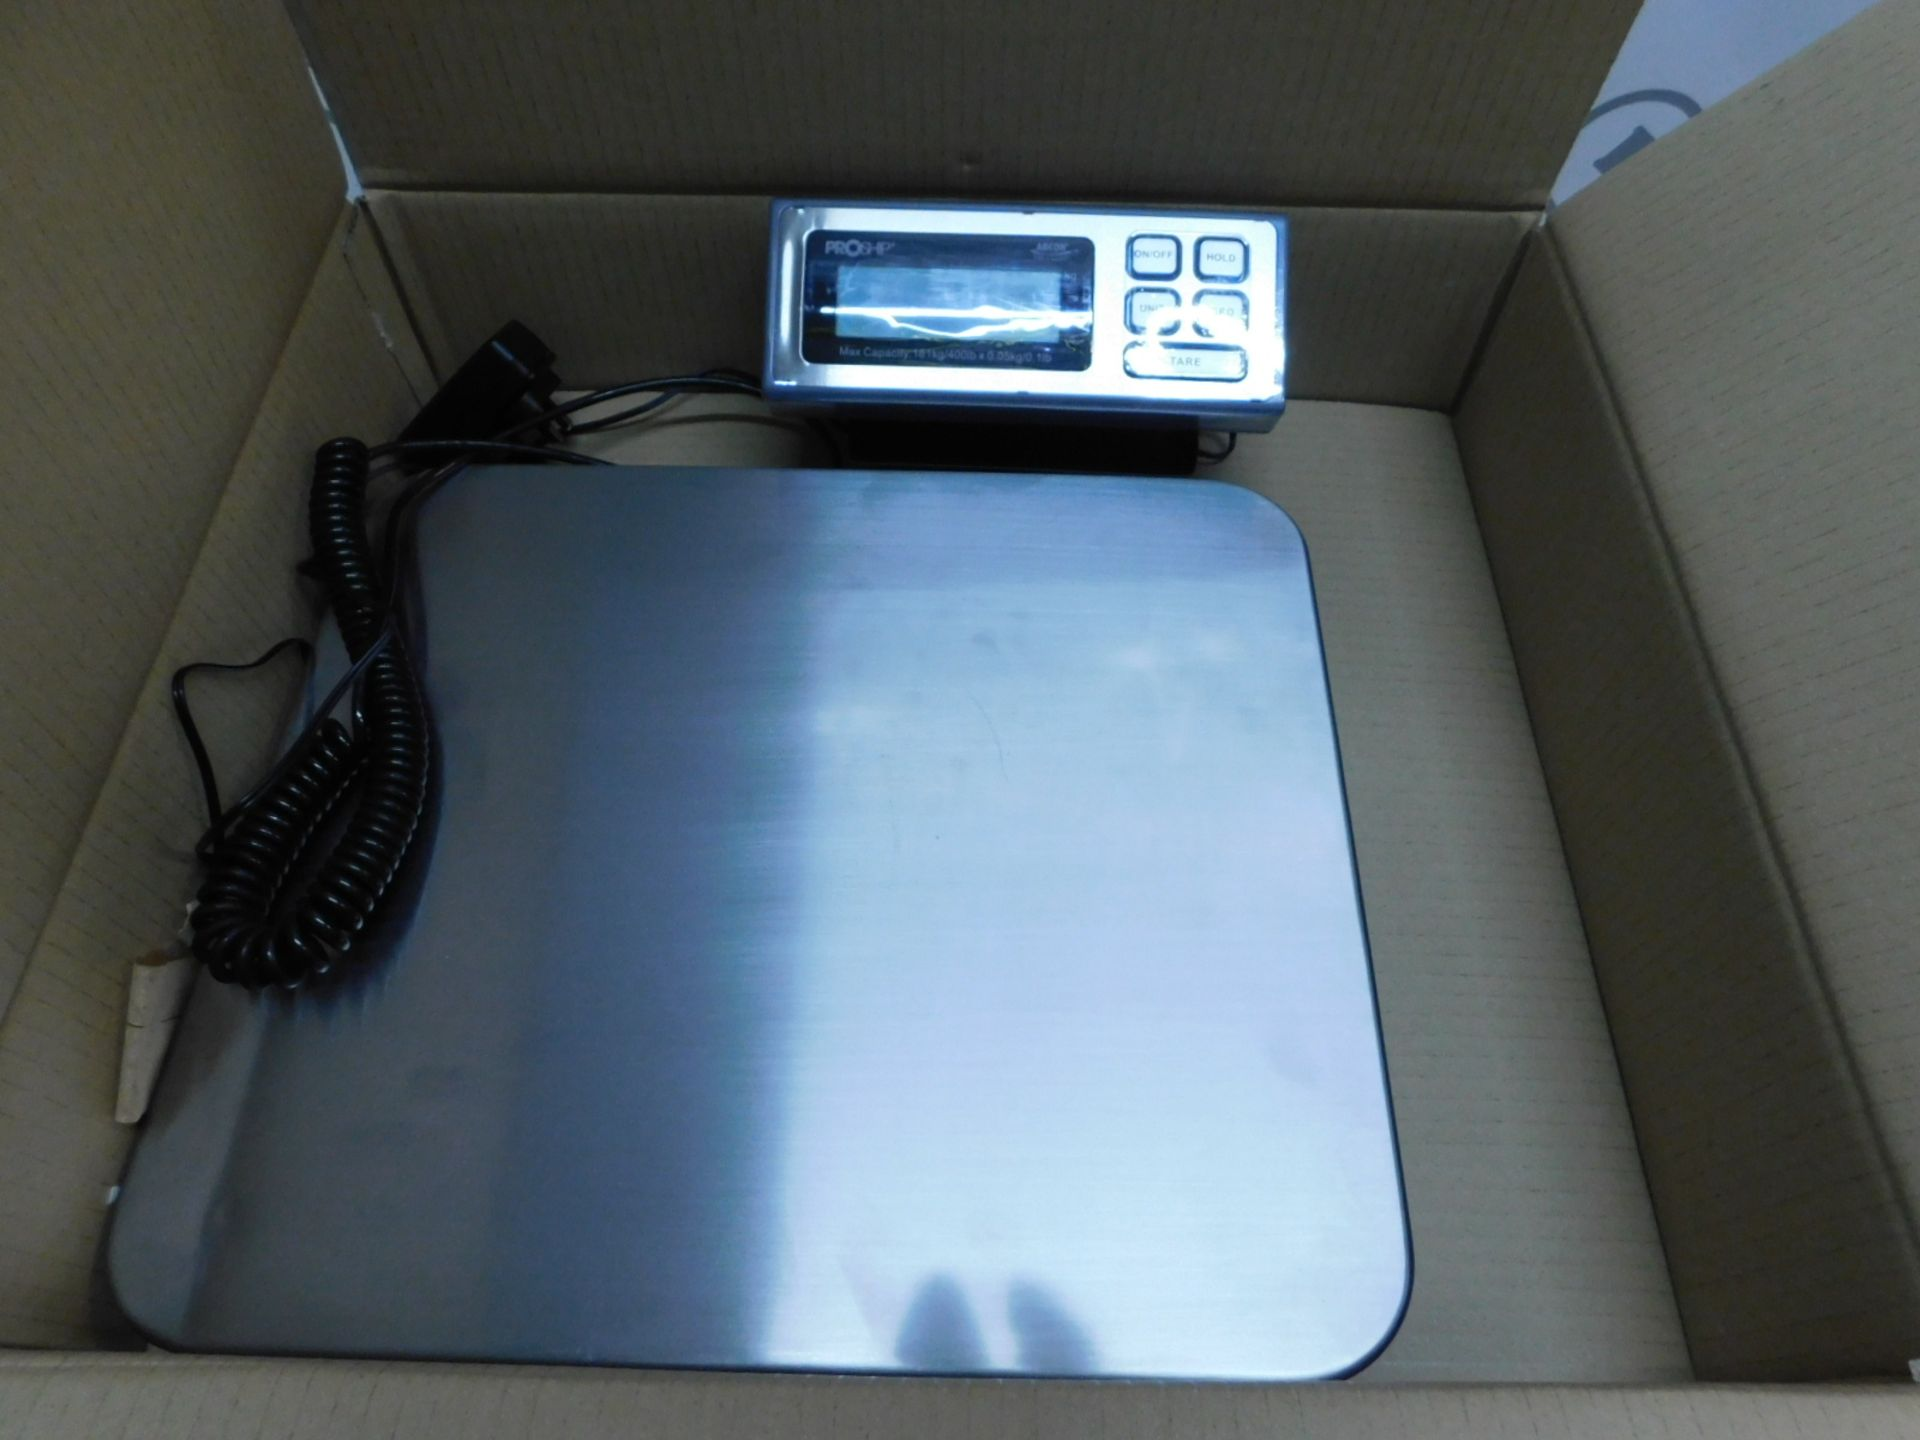 Lot 12 - 1 BOXED ABCON PROSHIP LARGE HEAVY DUTY ELECTRONIC SCALE (181KG/ 400LBS CAPACITY) RRP £129.99